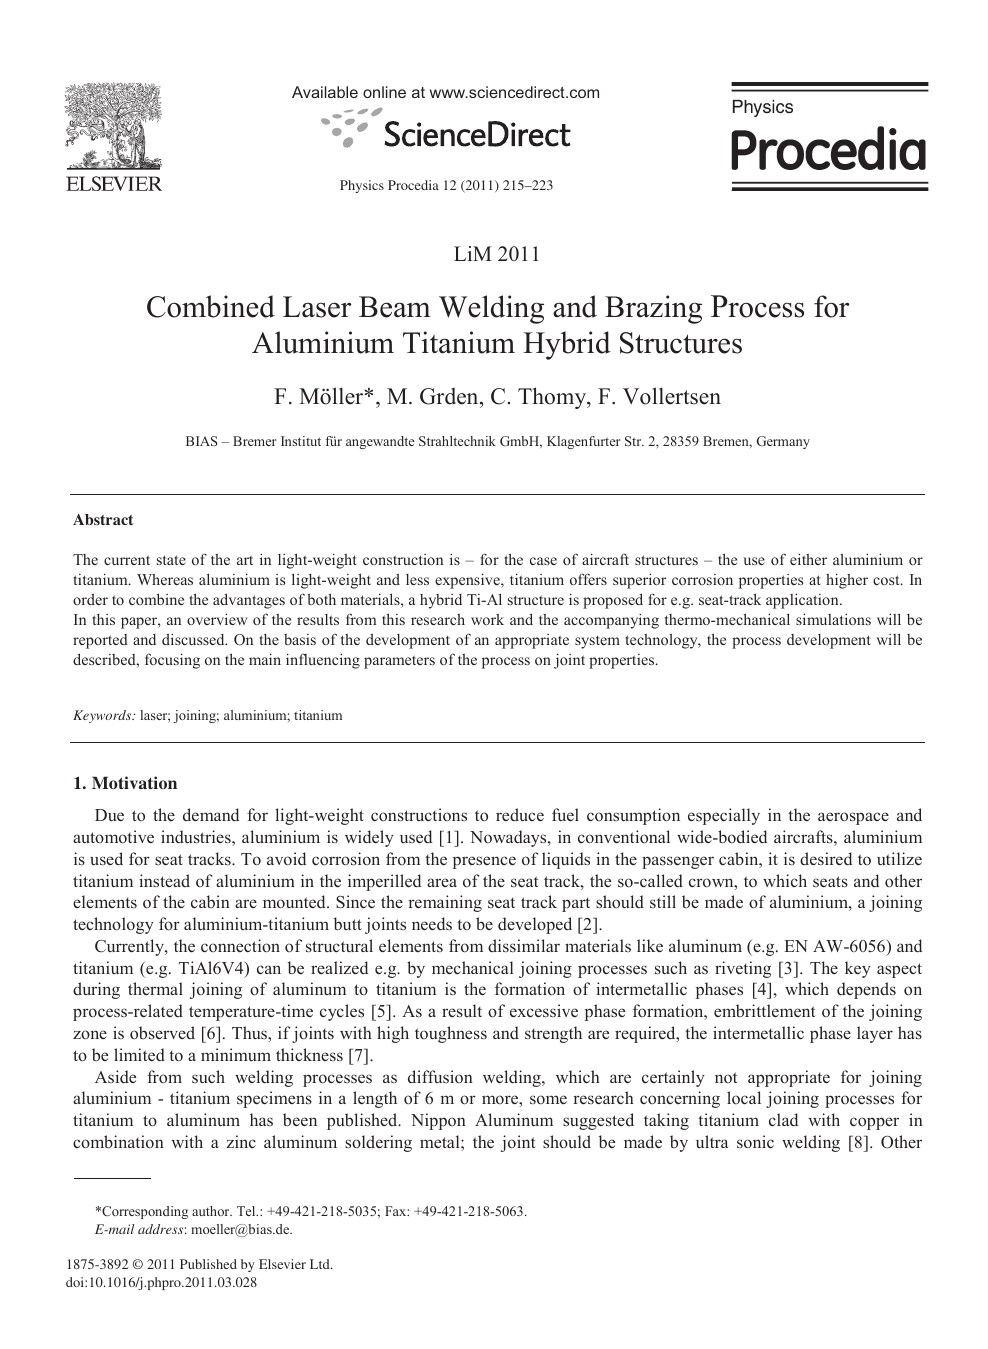 Combined Laser Beam Welding And Brazing Process For Aluminium Titanium Hybrid Structures Topic Of Research Paper In Materials Engineering Download Scholarly Article Pdf And Read For Free On Cyberleninka Open Science